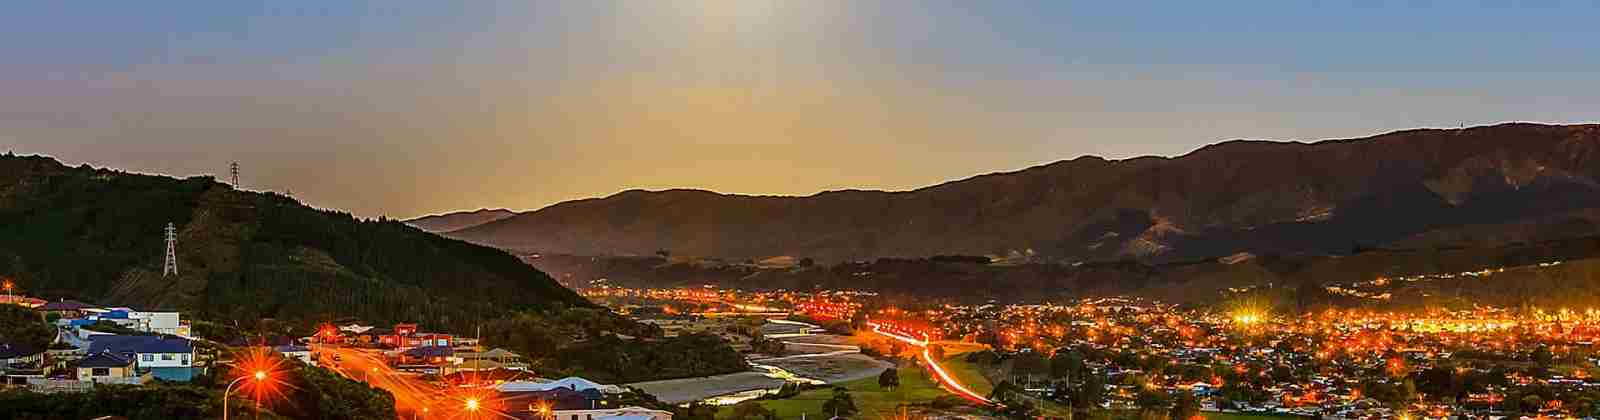 upper hutt city dusk